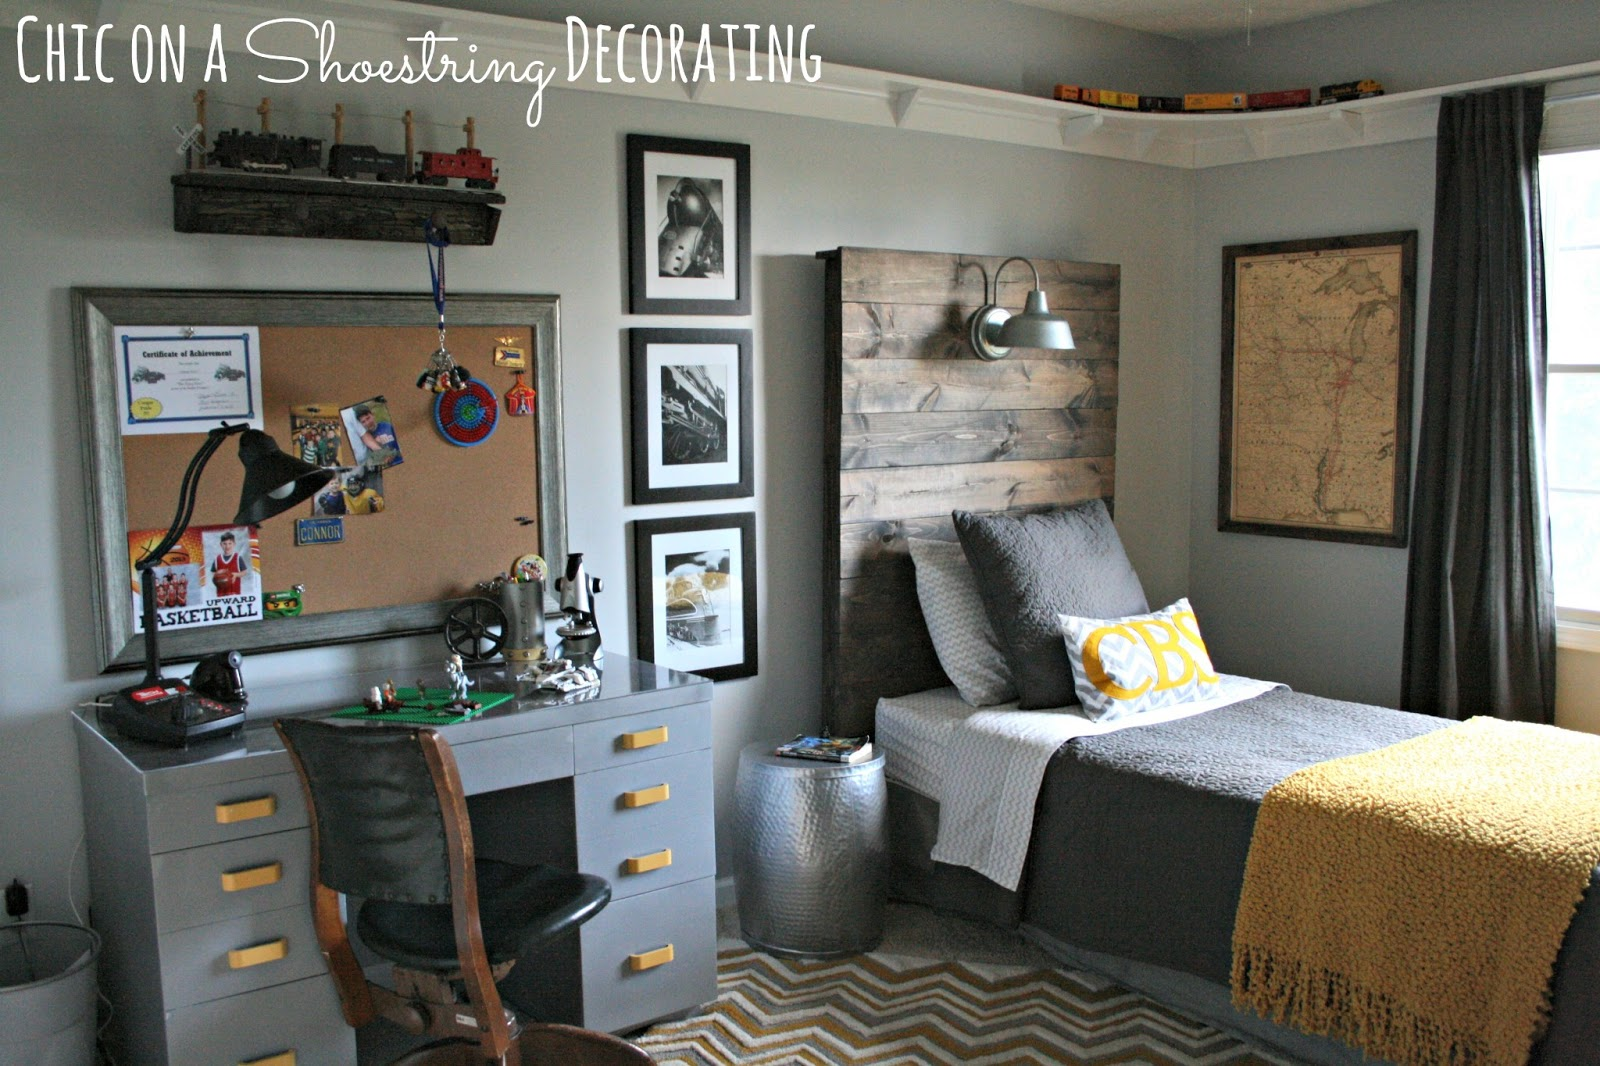 Chic on a shoestring decorating bigger boy room reveal - Boys room decor ...